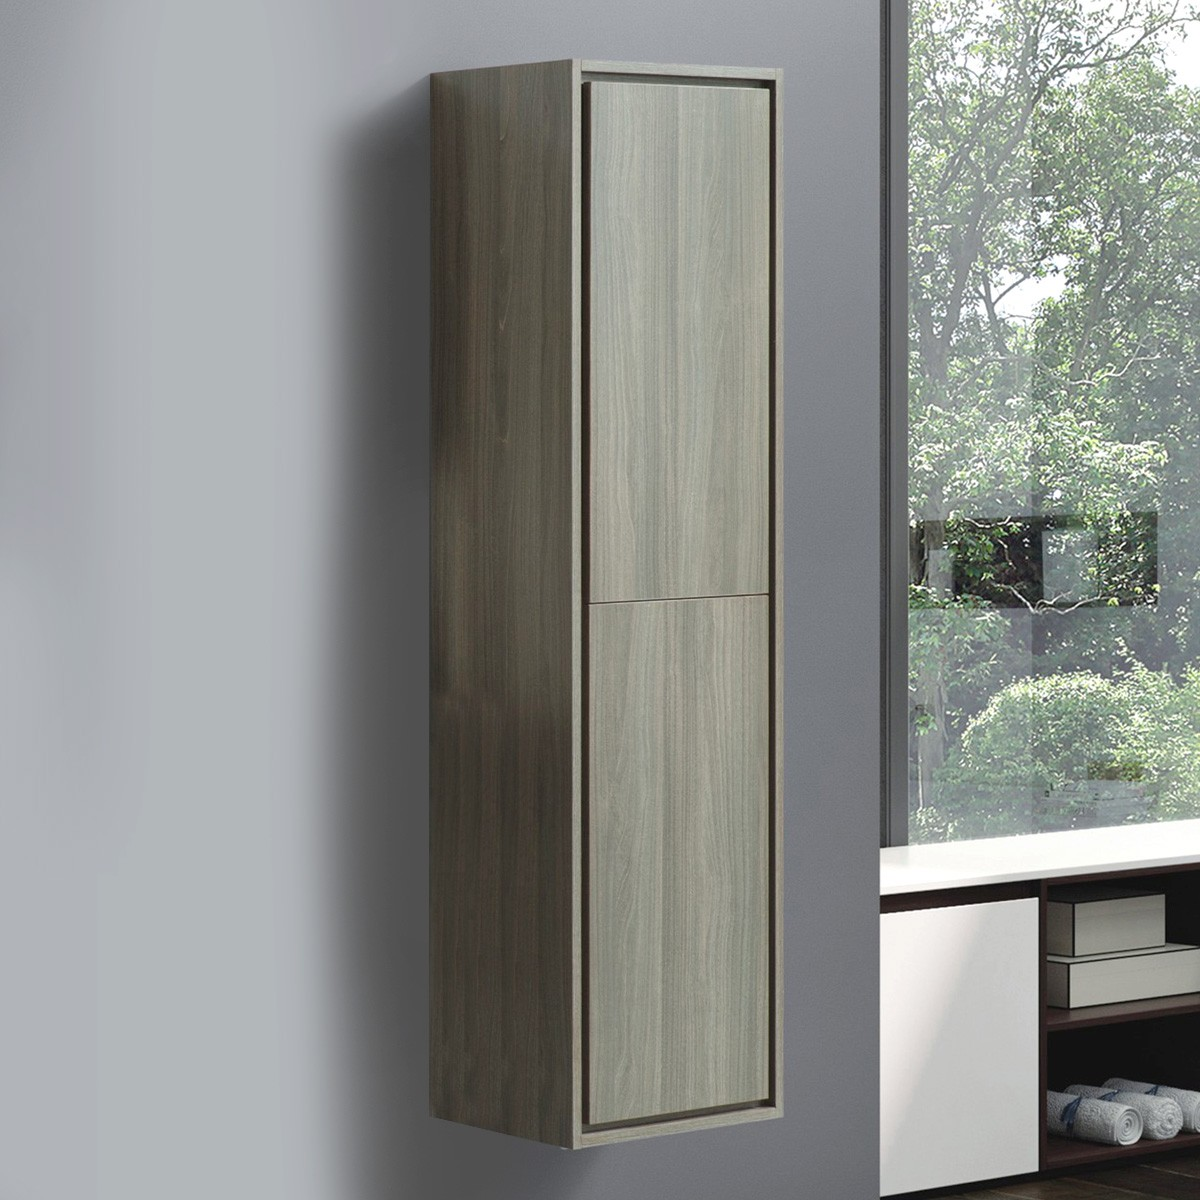 16 x 60 In. Wall Mount Linen Cabinet (VSW8002-S)